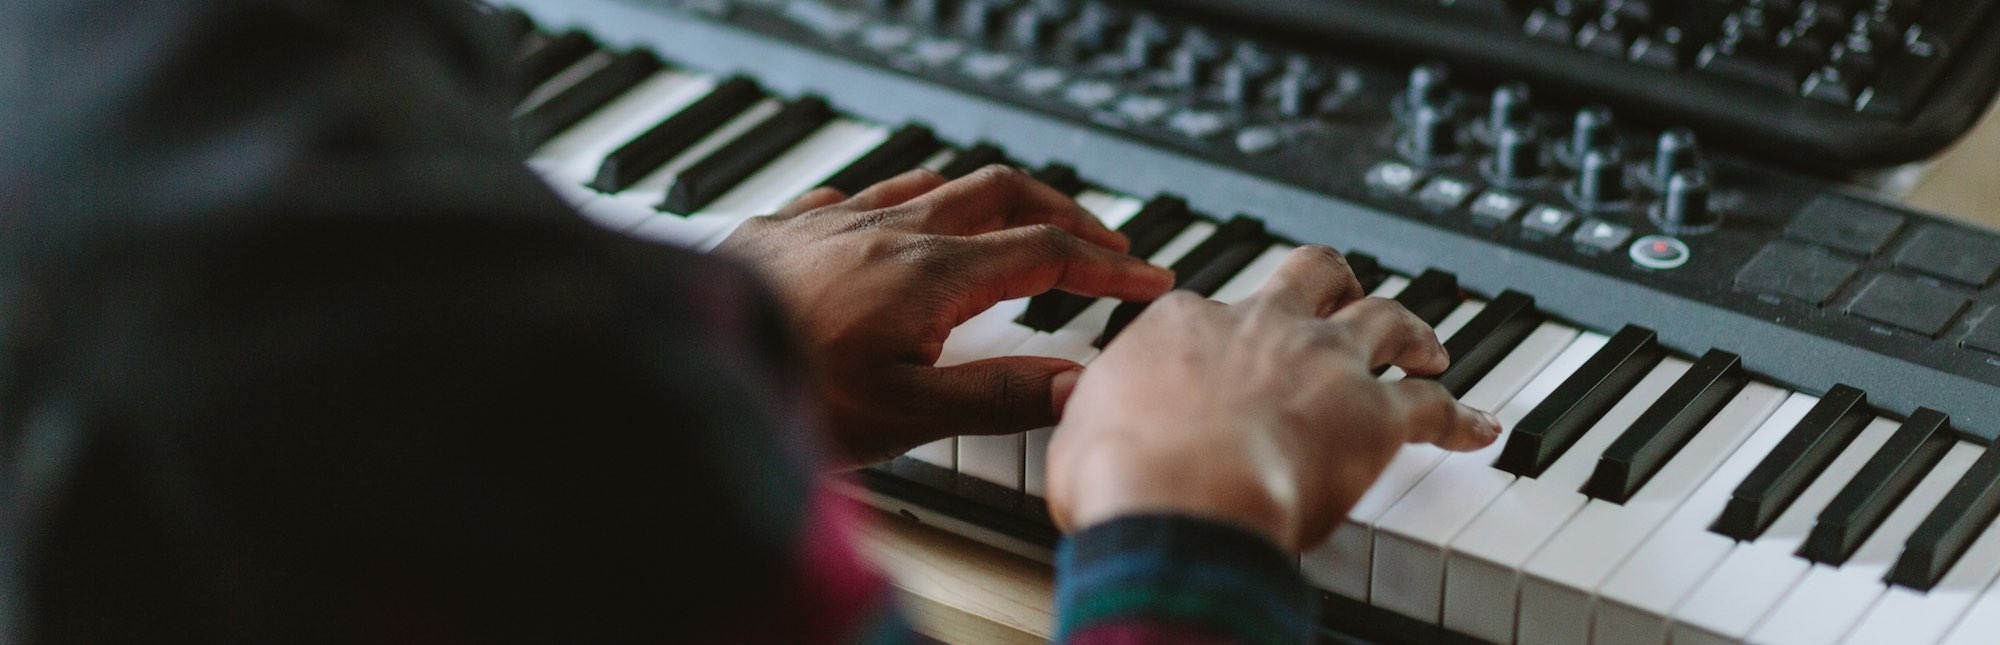 A photo of the arms and hands of a young person in a plaid shirt with both hands resting on the keys of a synthesizer keyboard that features many manual control dials